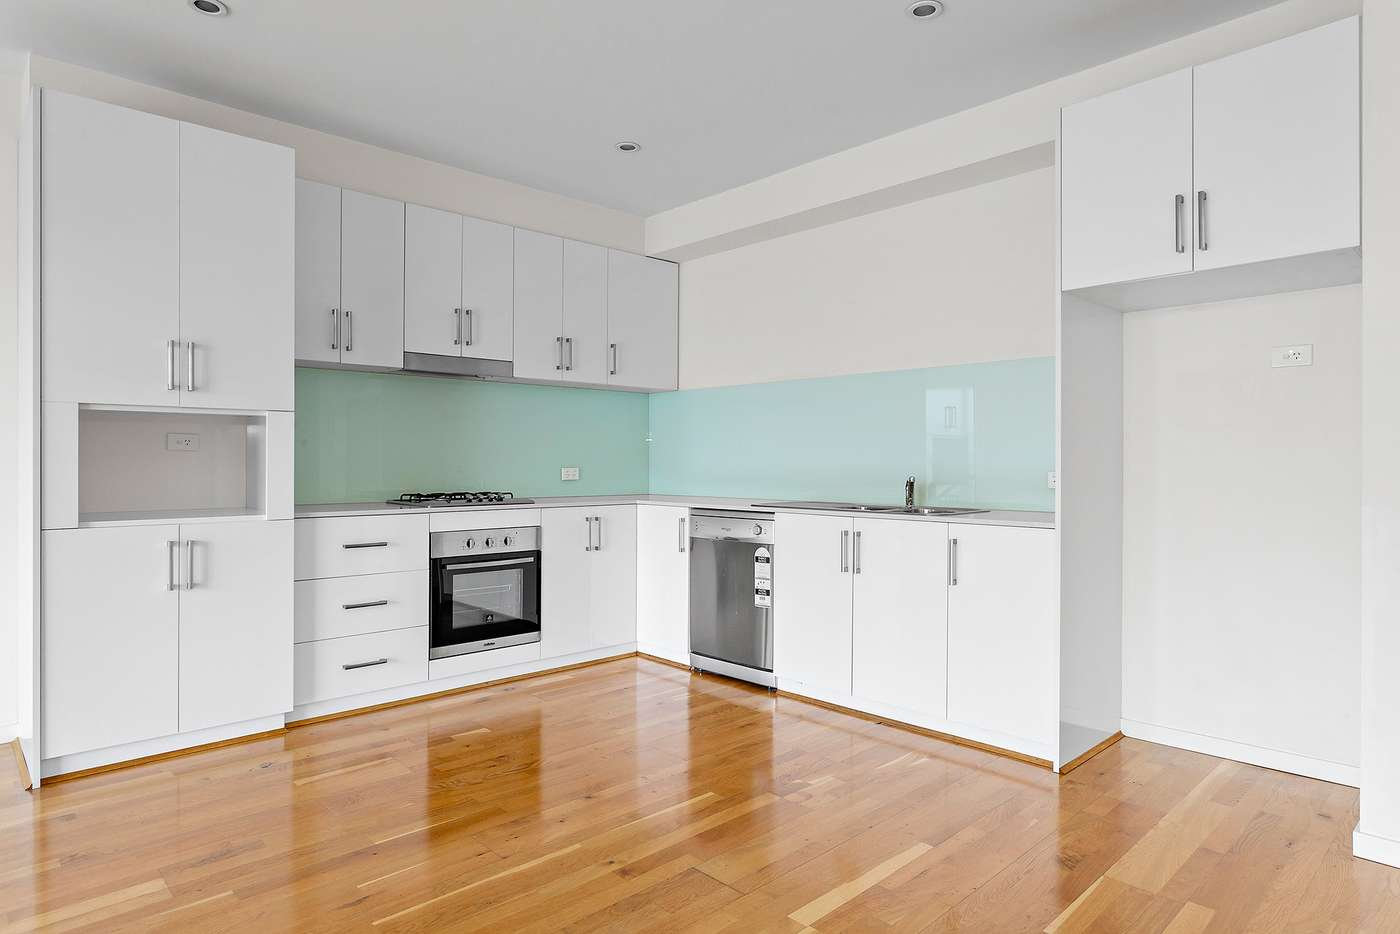 Main view of Homely apartment listing, 24/10 Breese Street, Brunswick VIC 3056